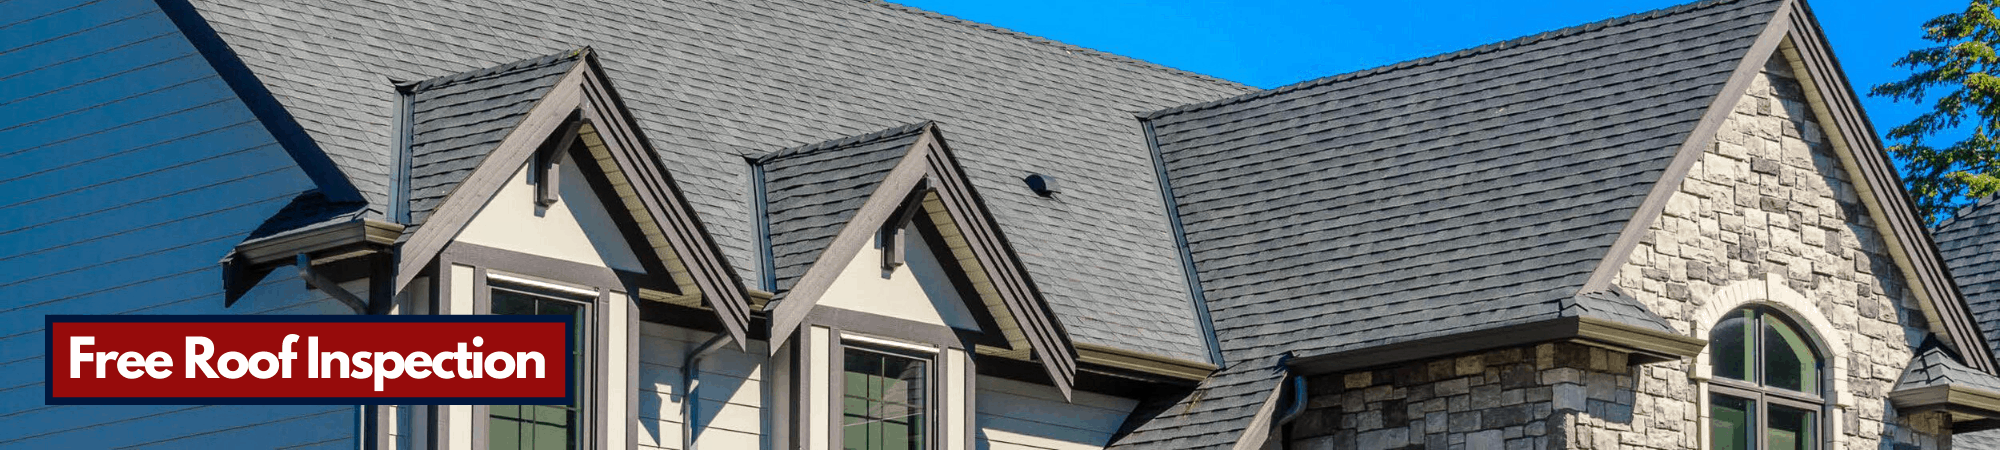 American Roofing Quality Local Roofing Contractors Big Bend Wi